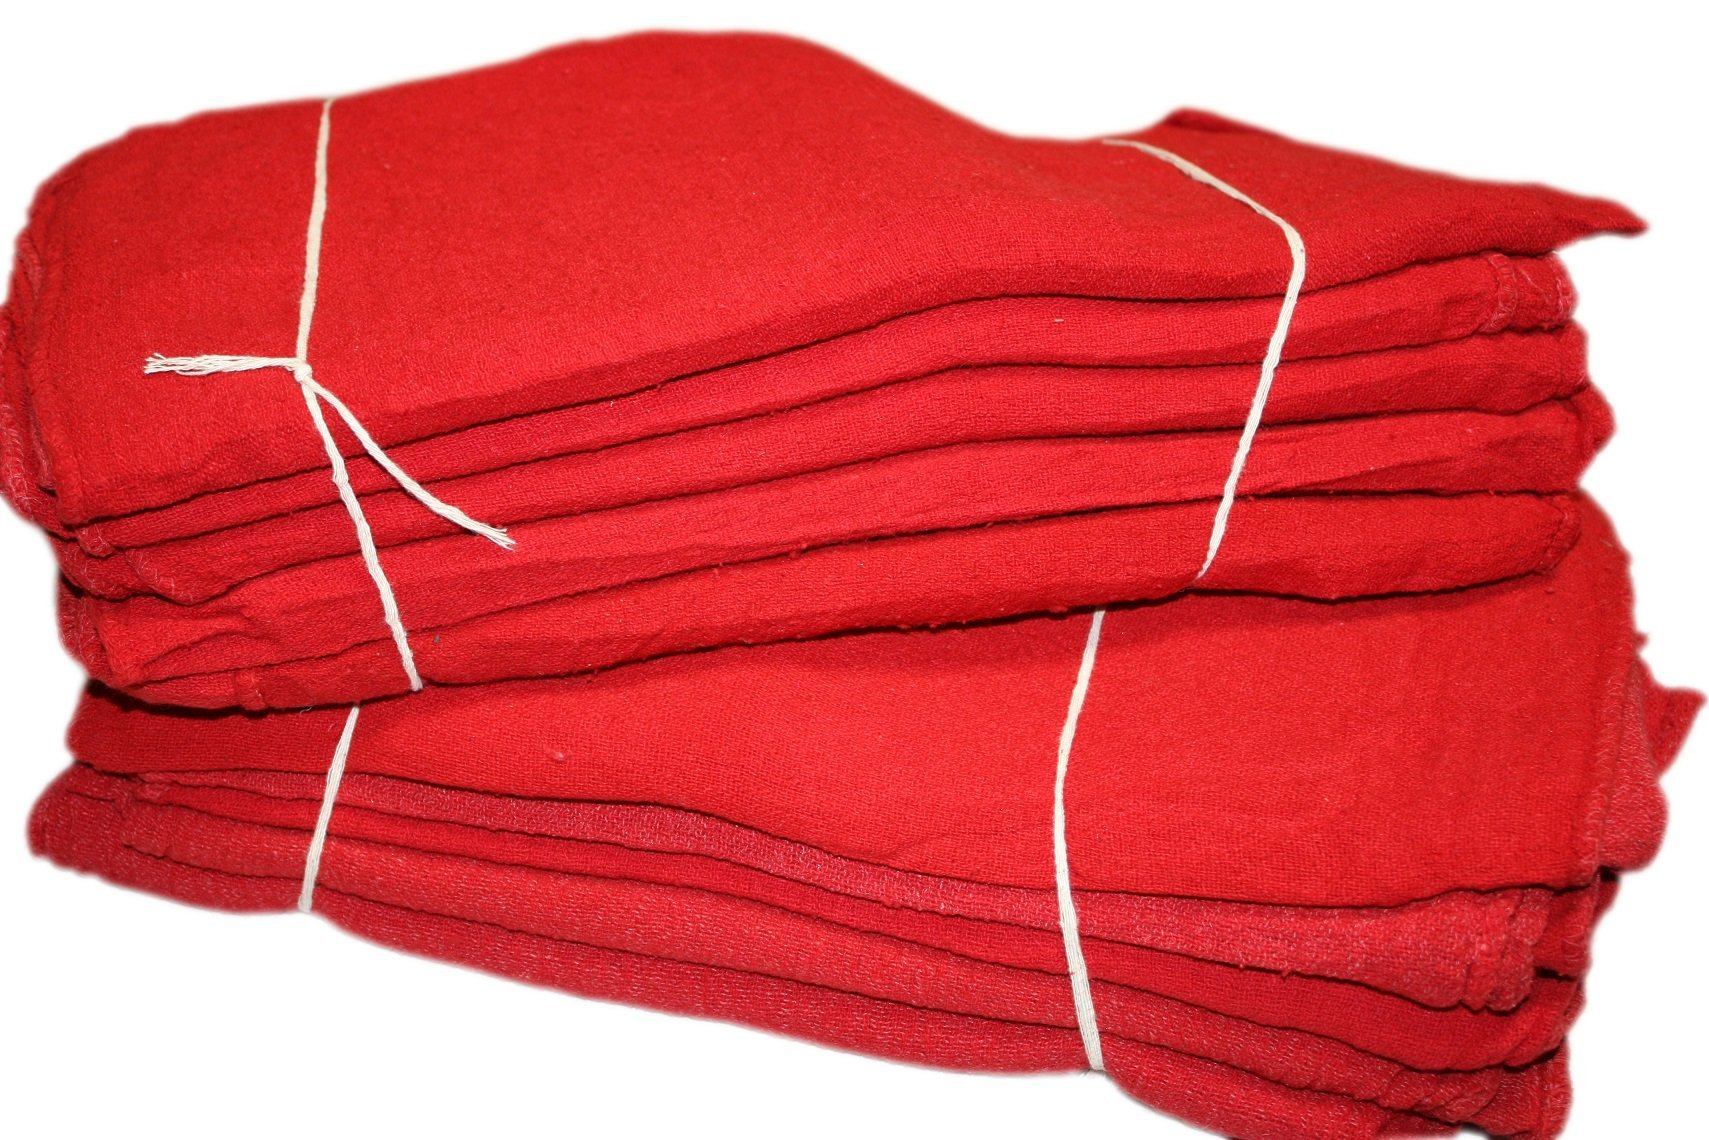 Pro's Choice Red Auto Mechanic Rags (Pack of 2500), Shop Towels (13 x 13 Inches) - 100% Cotton, Commercial Grade Wipers - Home, Garage, Auto Body Shop, Wiping Cleaning Oil Spills, Machinery, Tools